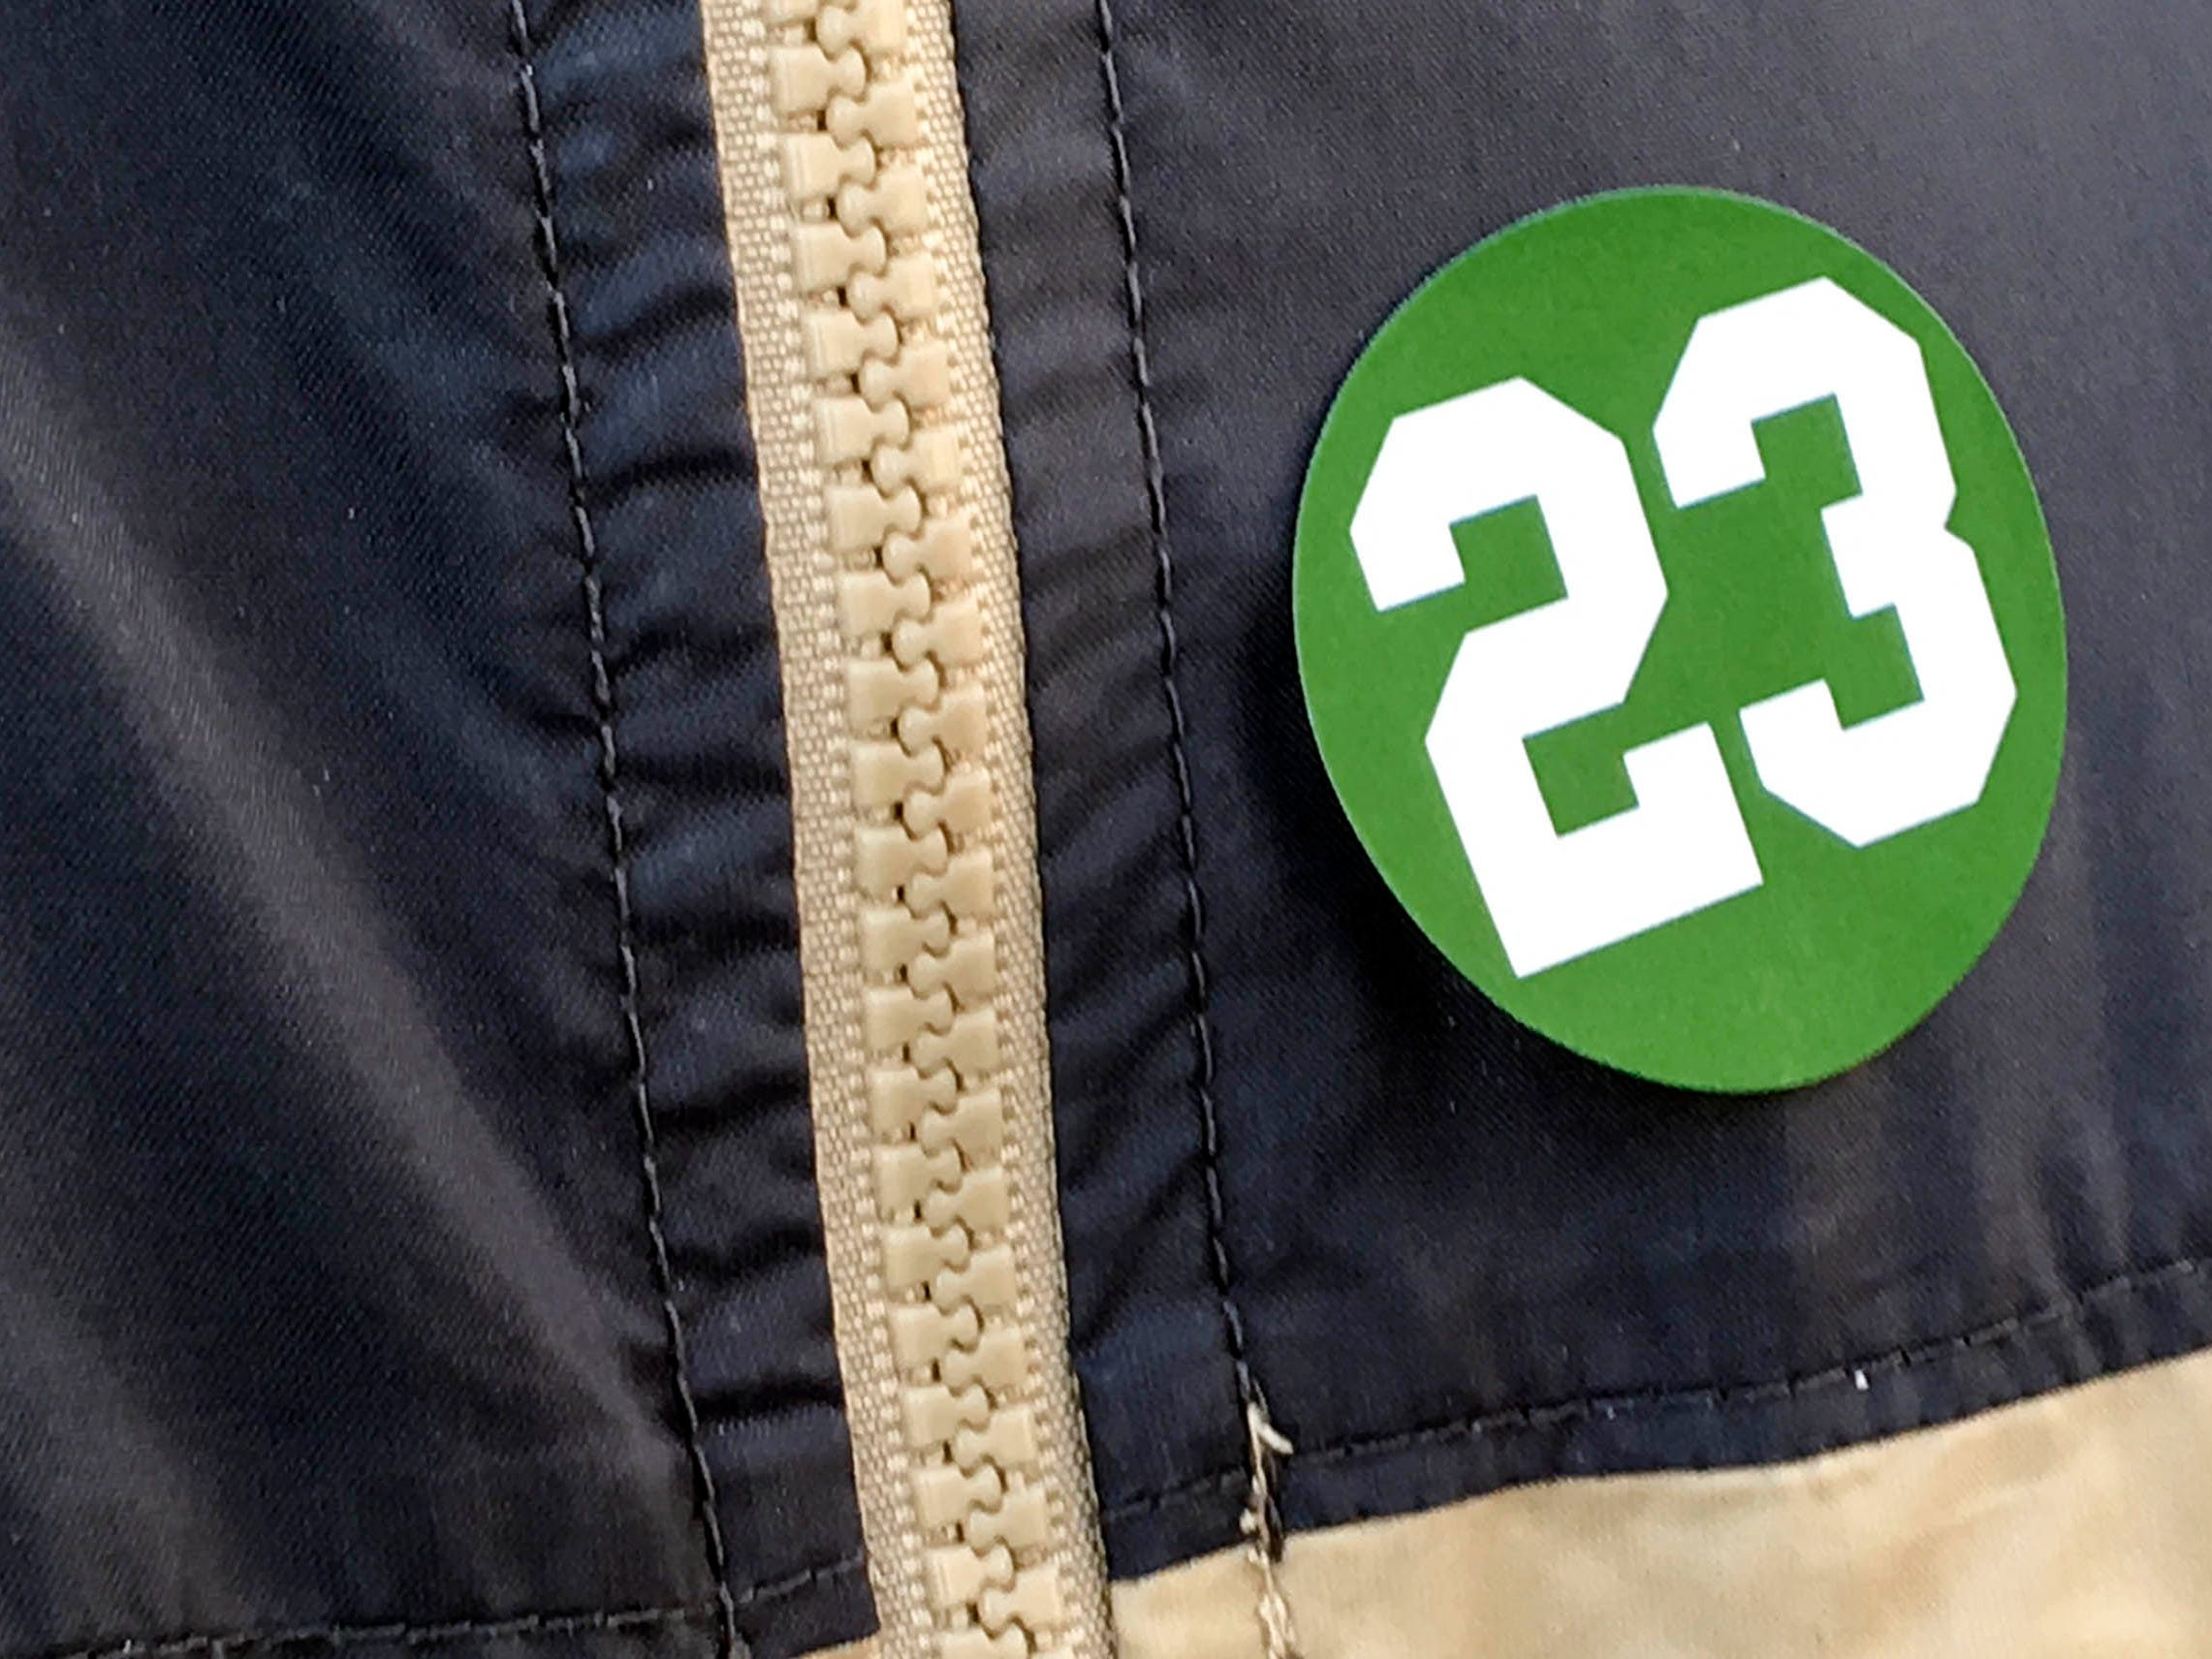 A number of fans and school officials are wearing the number 23 Tuesday at Viera High School. They were thinking about a Viera lacrosse player who suffered cardiac arrest and collapsed Monday afternoon.